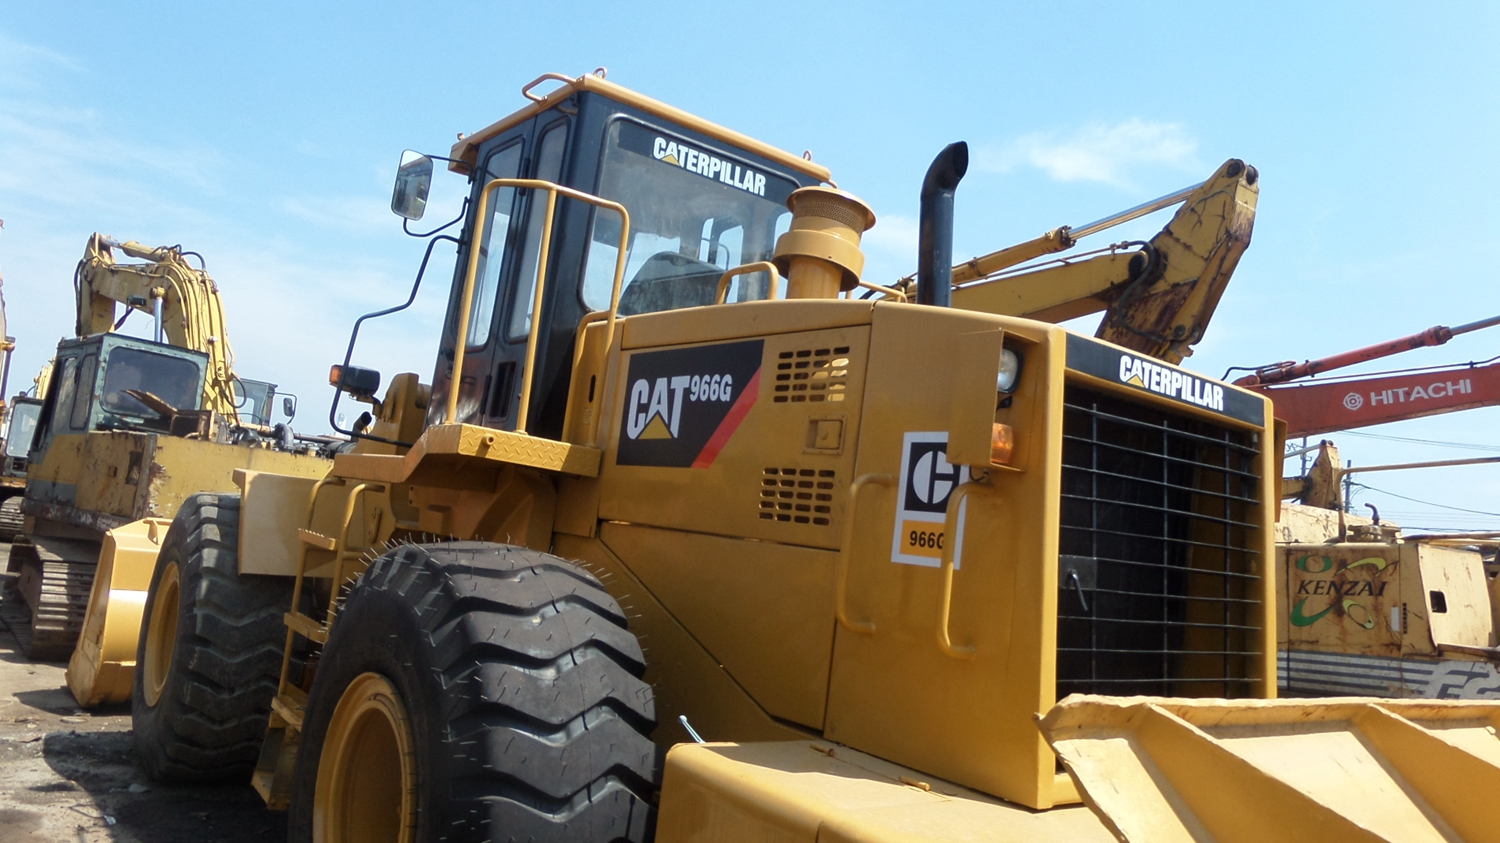 Used Loader Caterpillar 950G/ 962H/ 950E/ 966G Used Cheap CATERPILLAR CAT 950G Wheel Loader with Good Condition